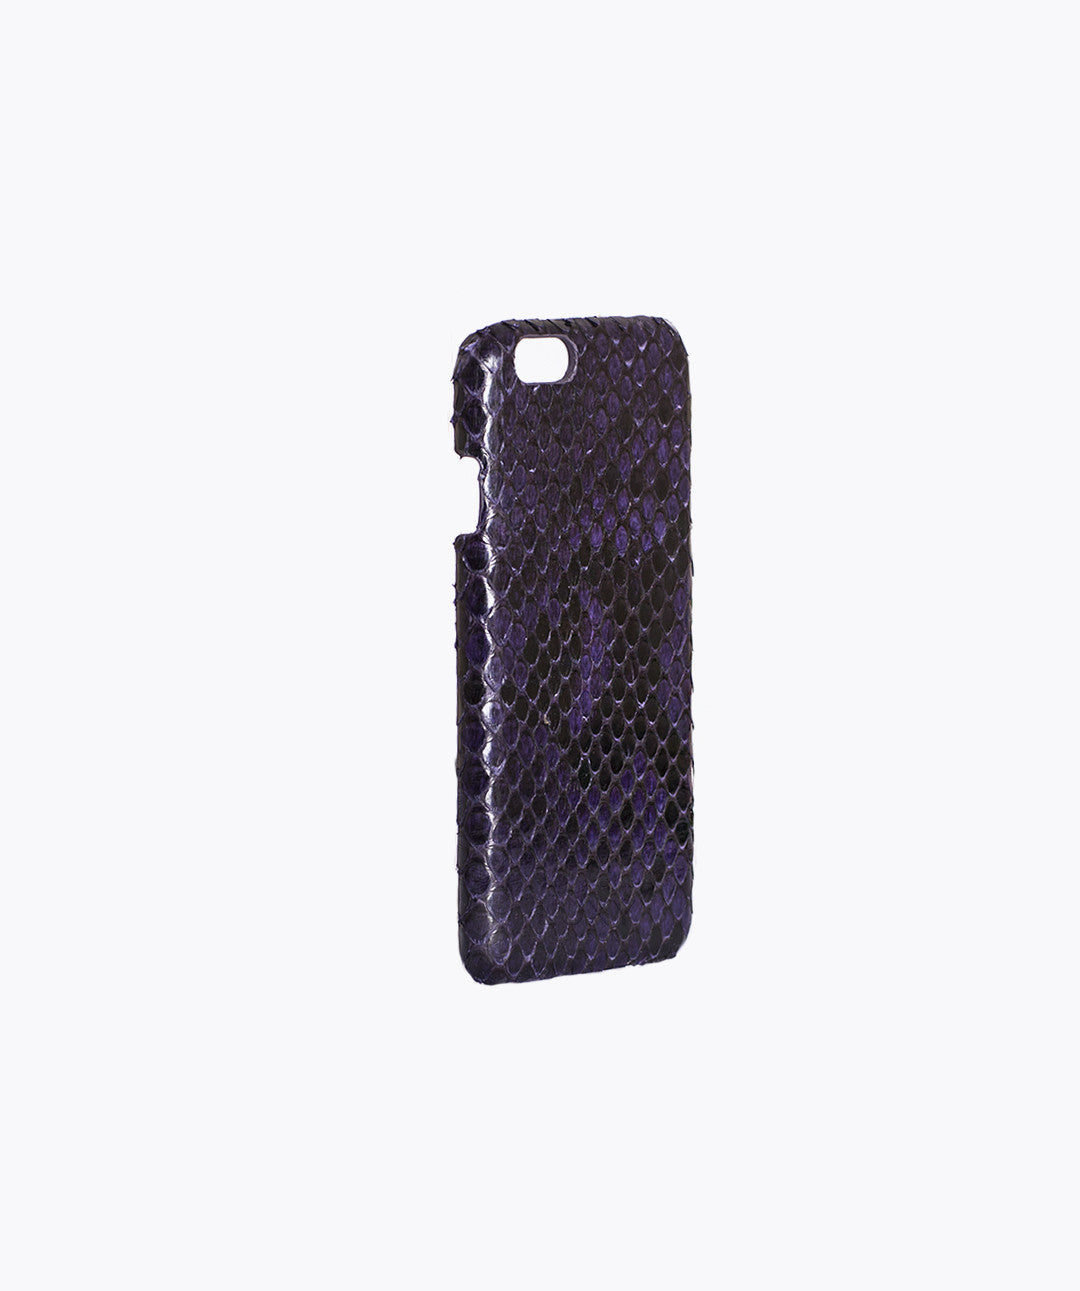 PYTHON IPHONE CASE - PURPLE